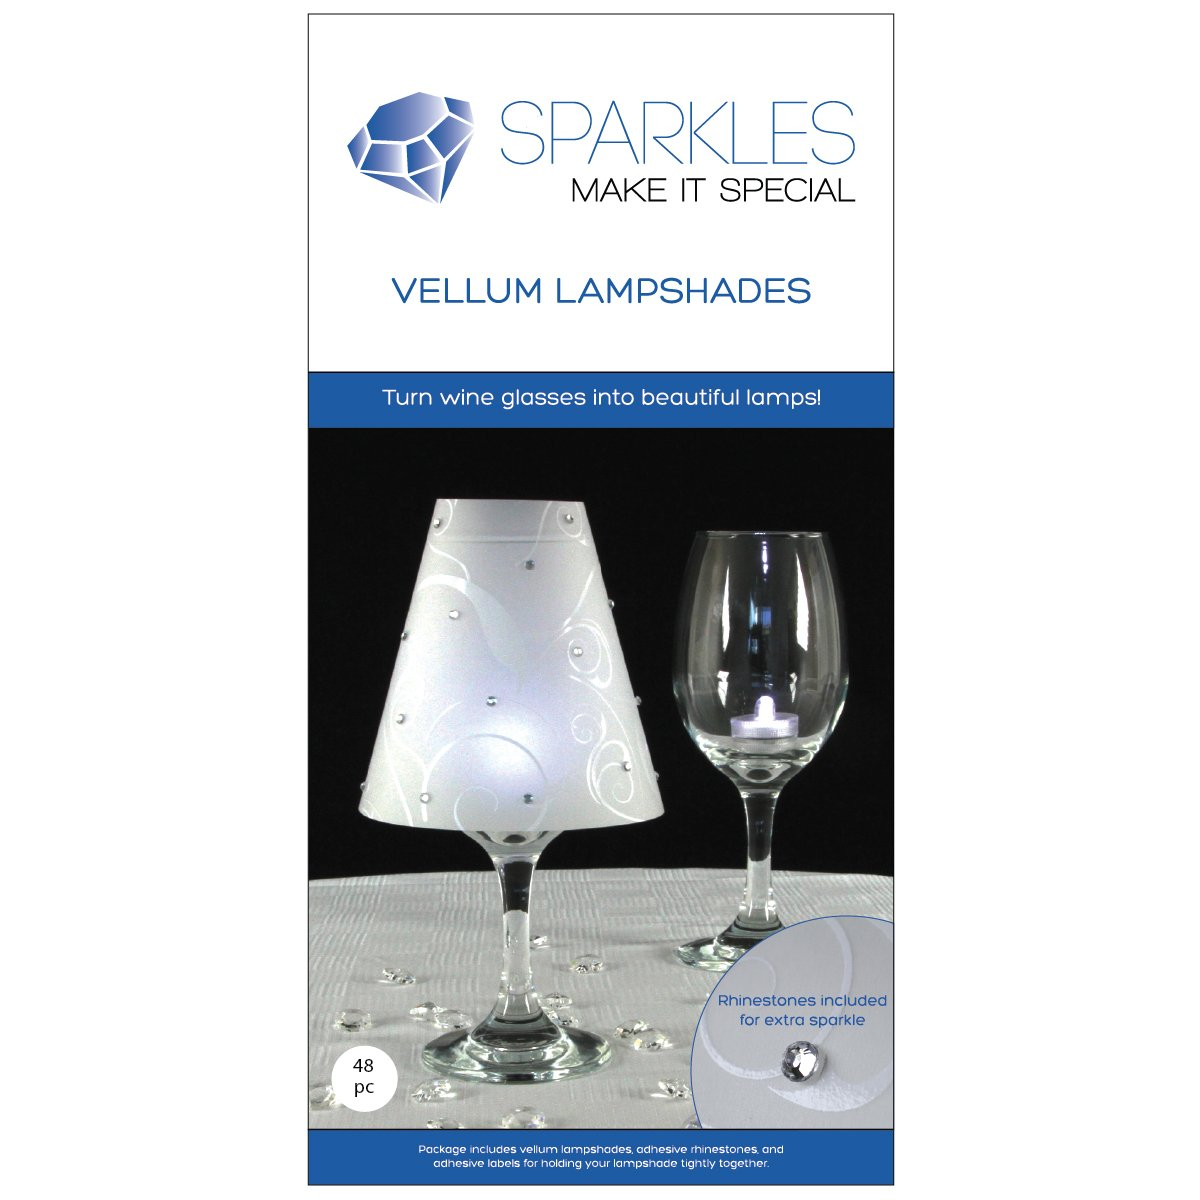 Sparkles Make It Special 48 pc Wine Glass Lamp Shades with Rhinestones - Wedding Party Table Centerpiece Decoration - White Vellum Swirl Print